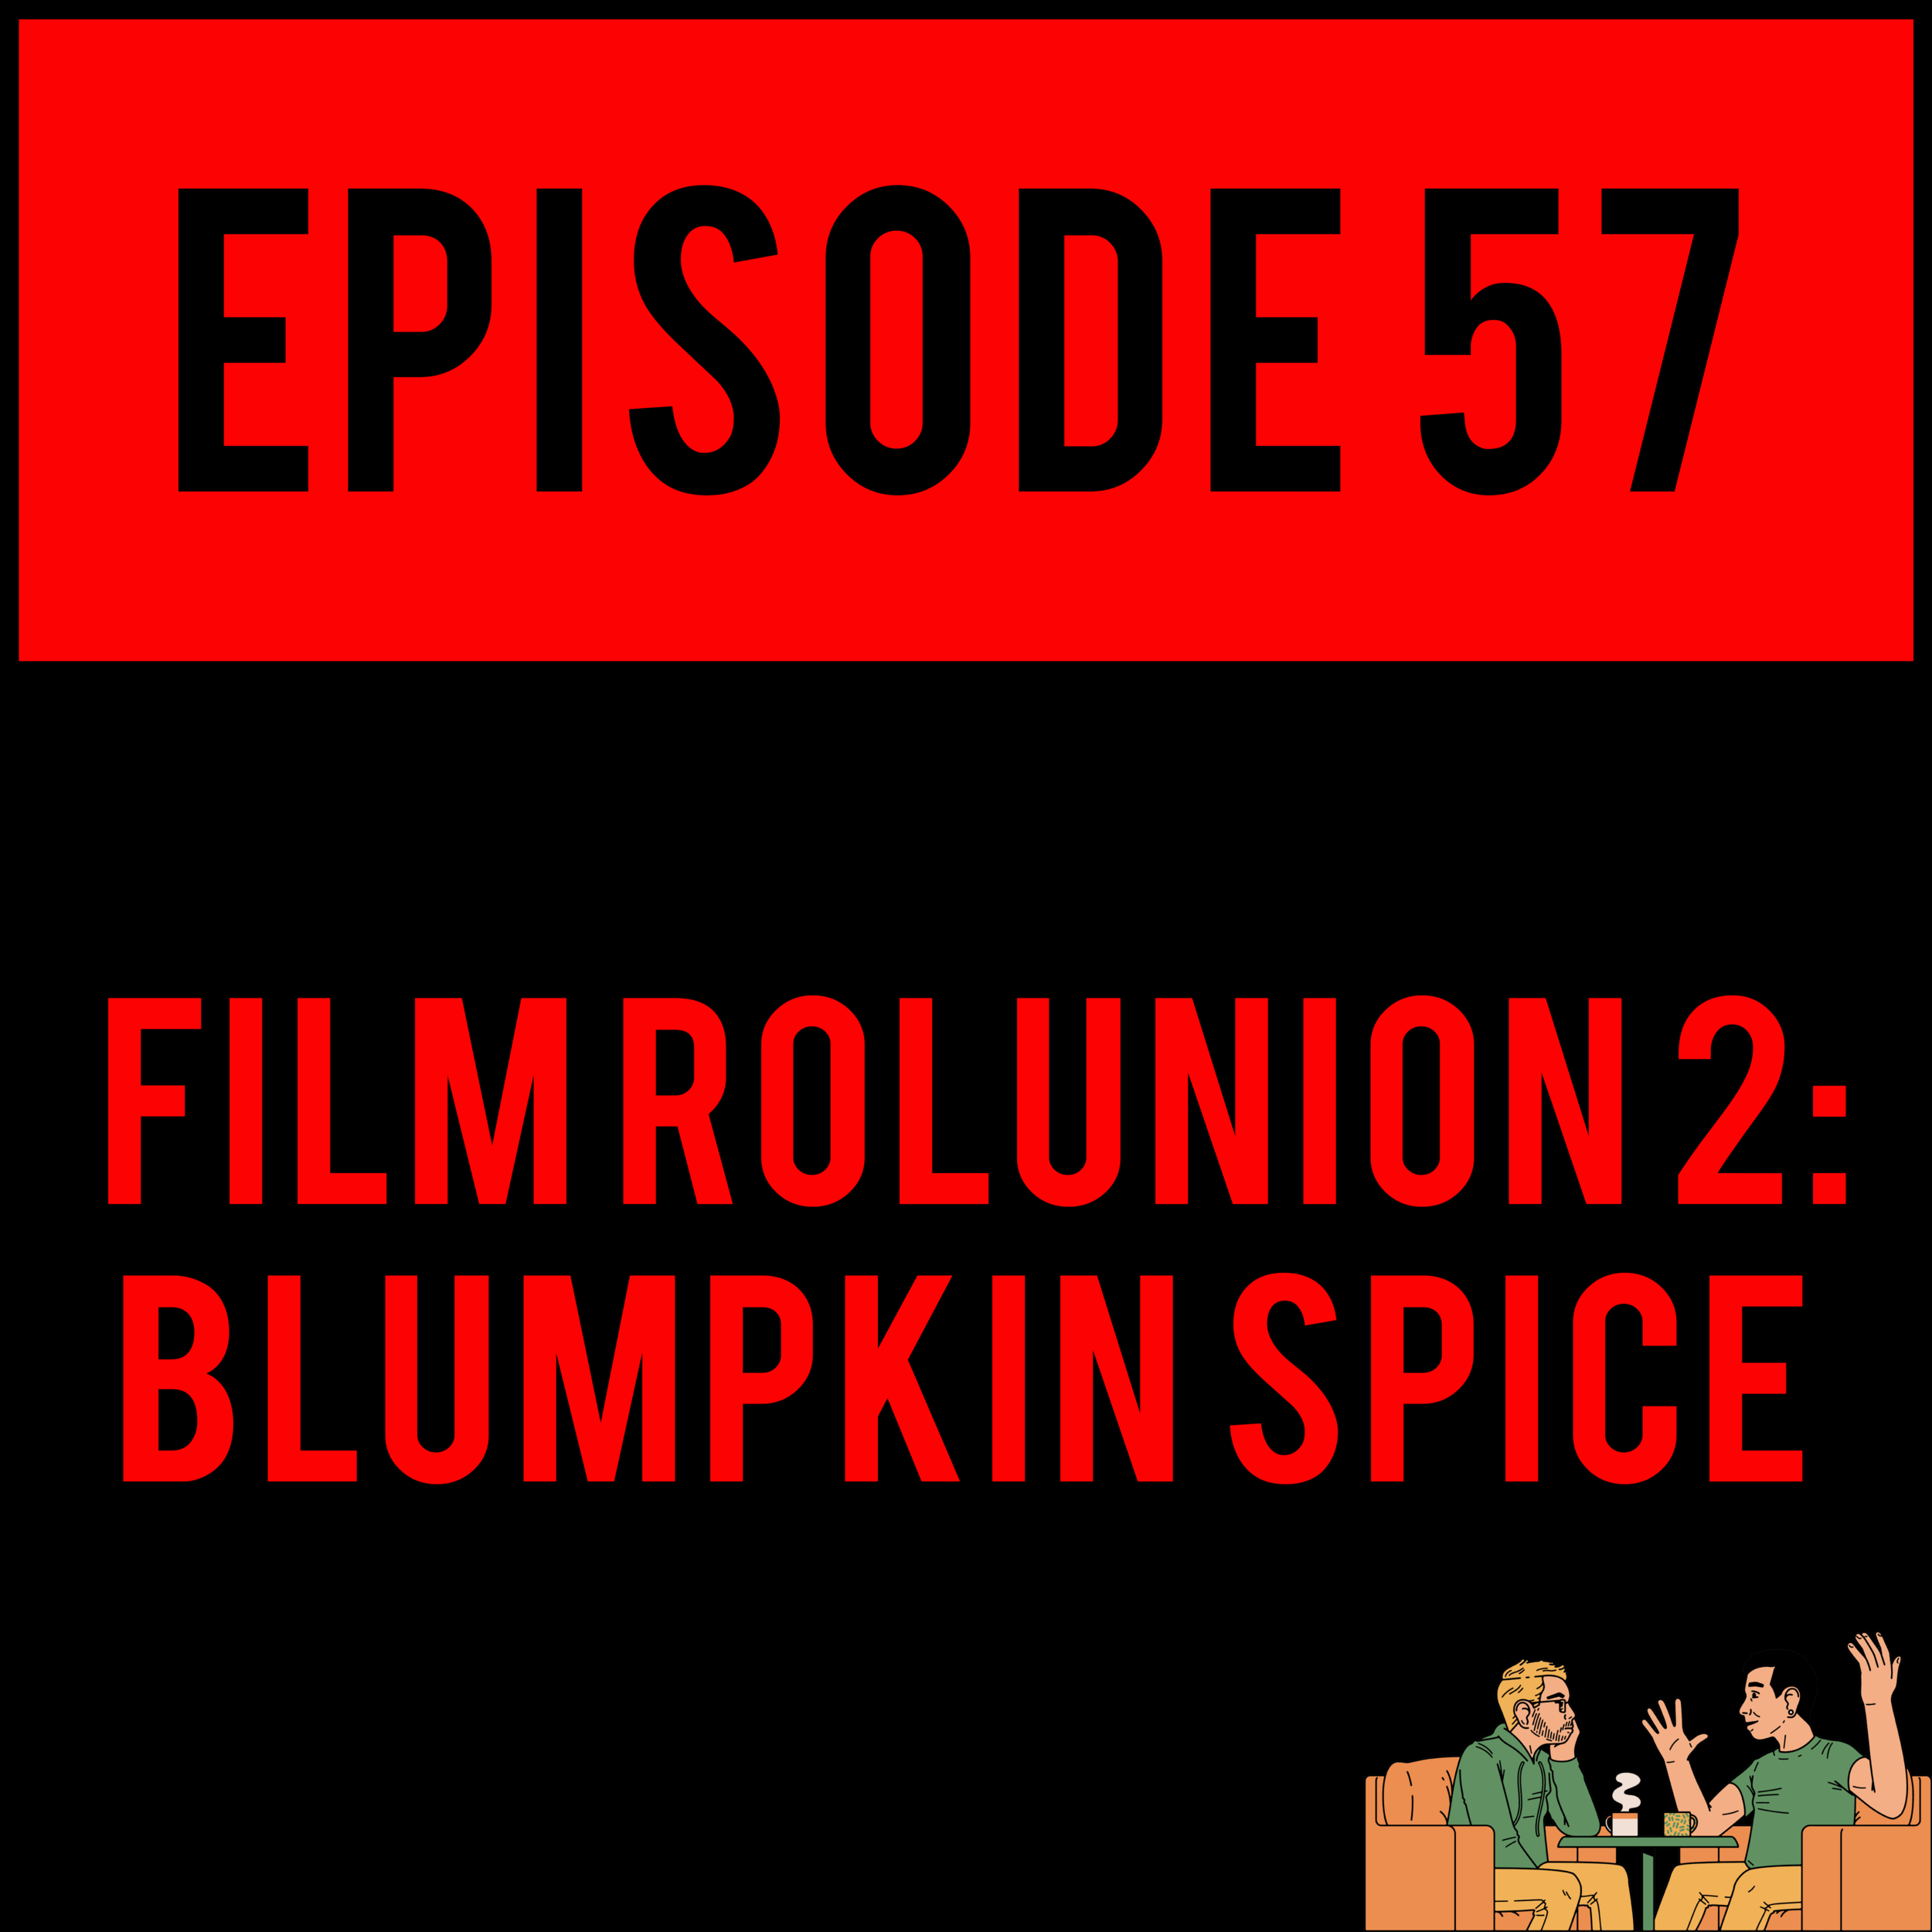 "EPISODE 57 - *enormous inhale* Alex tells a K-RAZY tour story, Brandon Karlis tests his gag reflex by shoving the entire mic in his mouth, Robbie Clark officially changes his name to ""Bobathan"", Patrick Hunter sucks at bass and Justyn becomes untethered and his rage knows no bounds. The Film Role Boyz are talking about the worst movies we've ever seen. FILM ROLUNION 2: BLUMPKIN SPICE - EPISODE 57 will LITERALLY give you cancer."